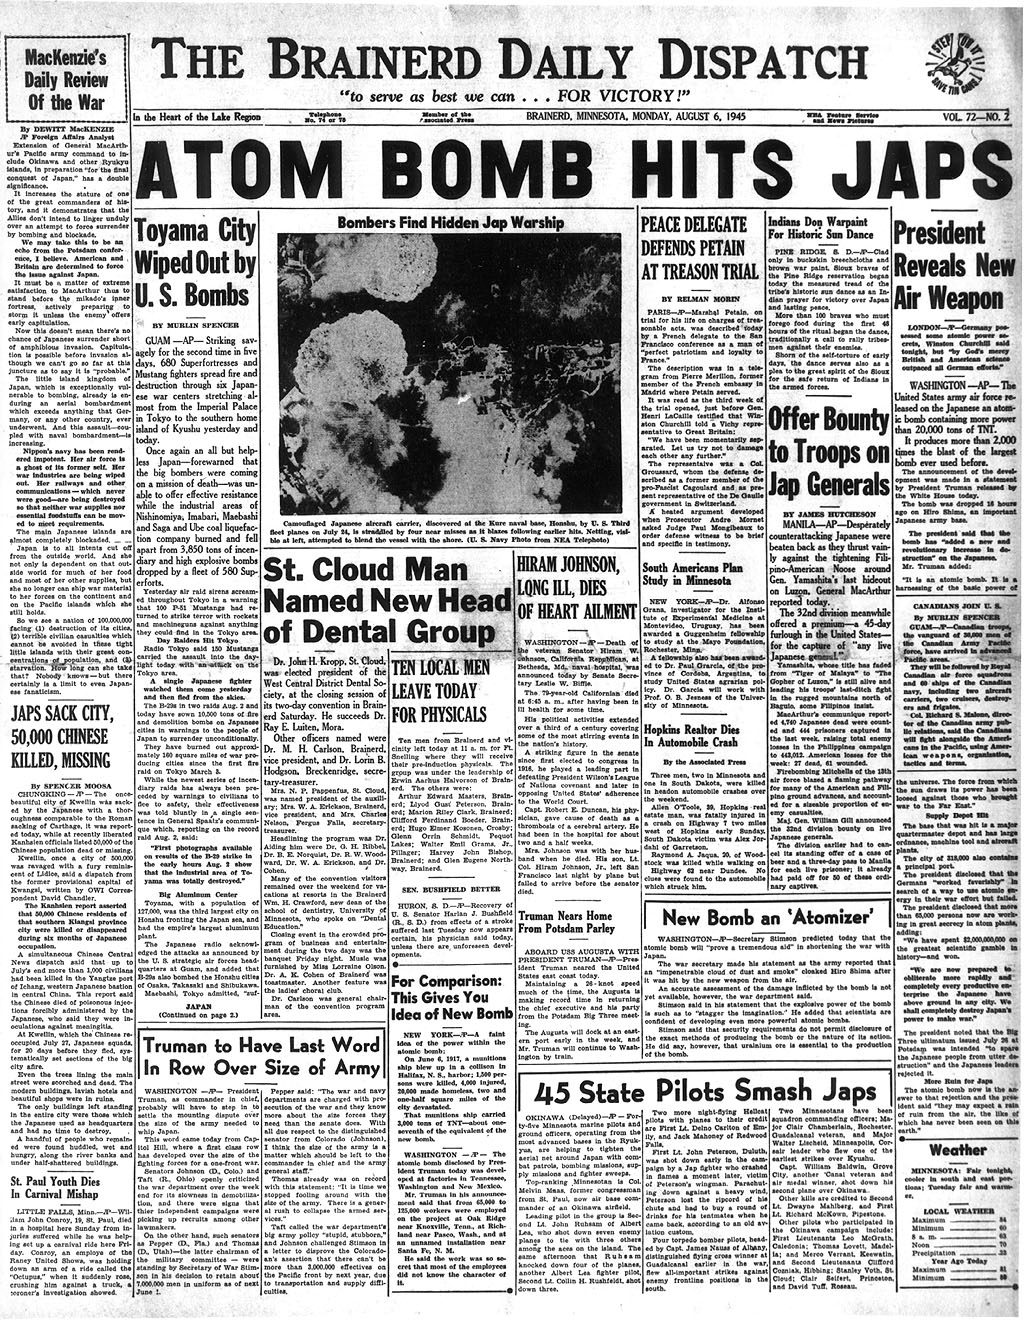 atomic bombing of hiroshima essay As commonly perceived, atomic bombs were intended as a deterrent to the german threat, but ended up as an offensive weapon of mass destruction against japan i.